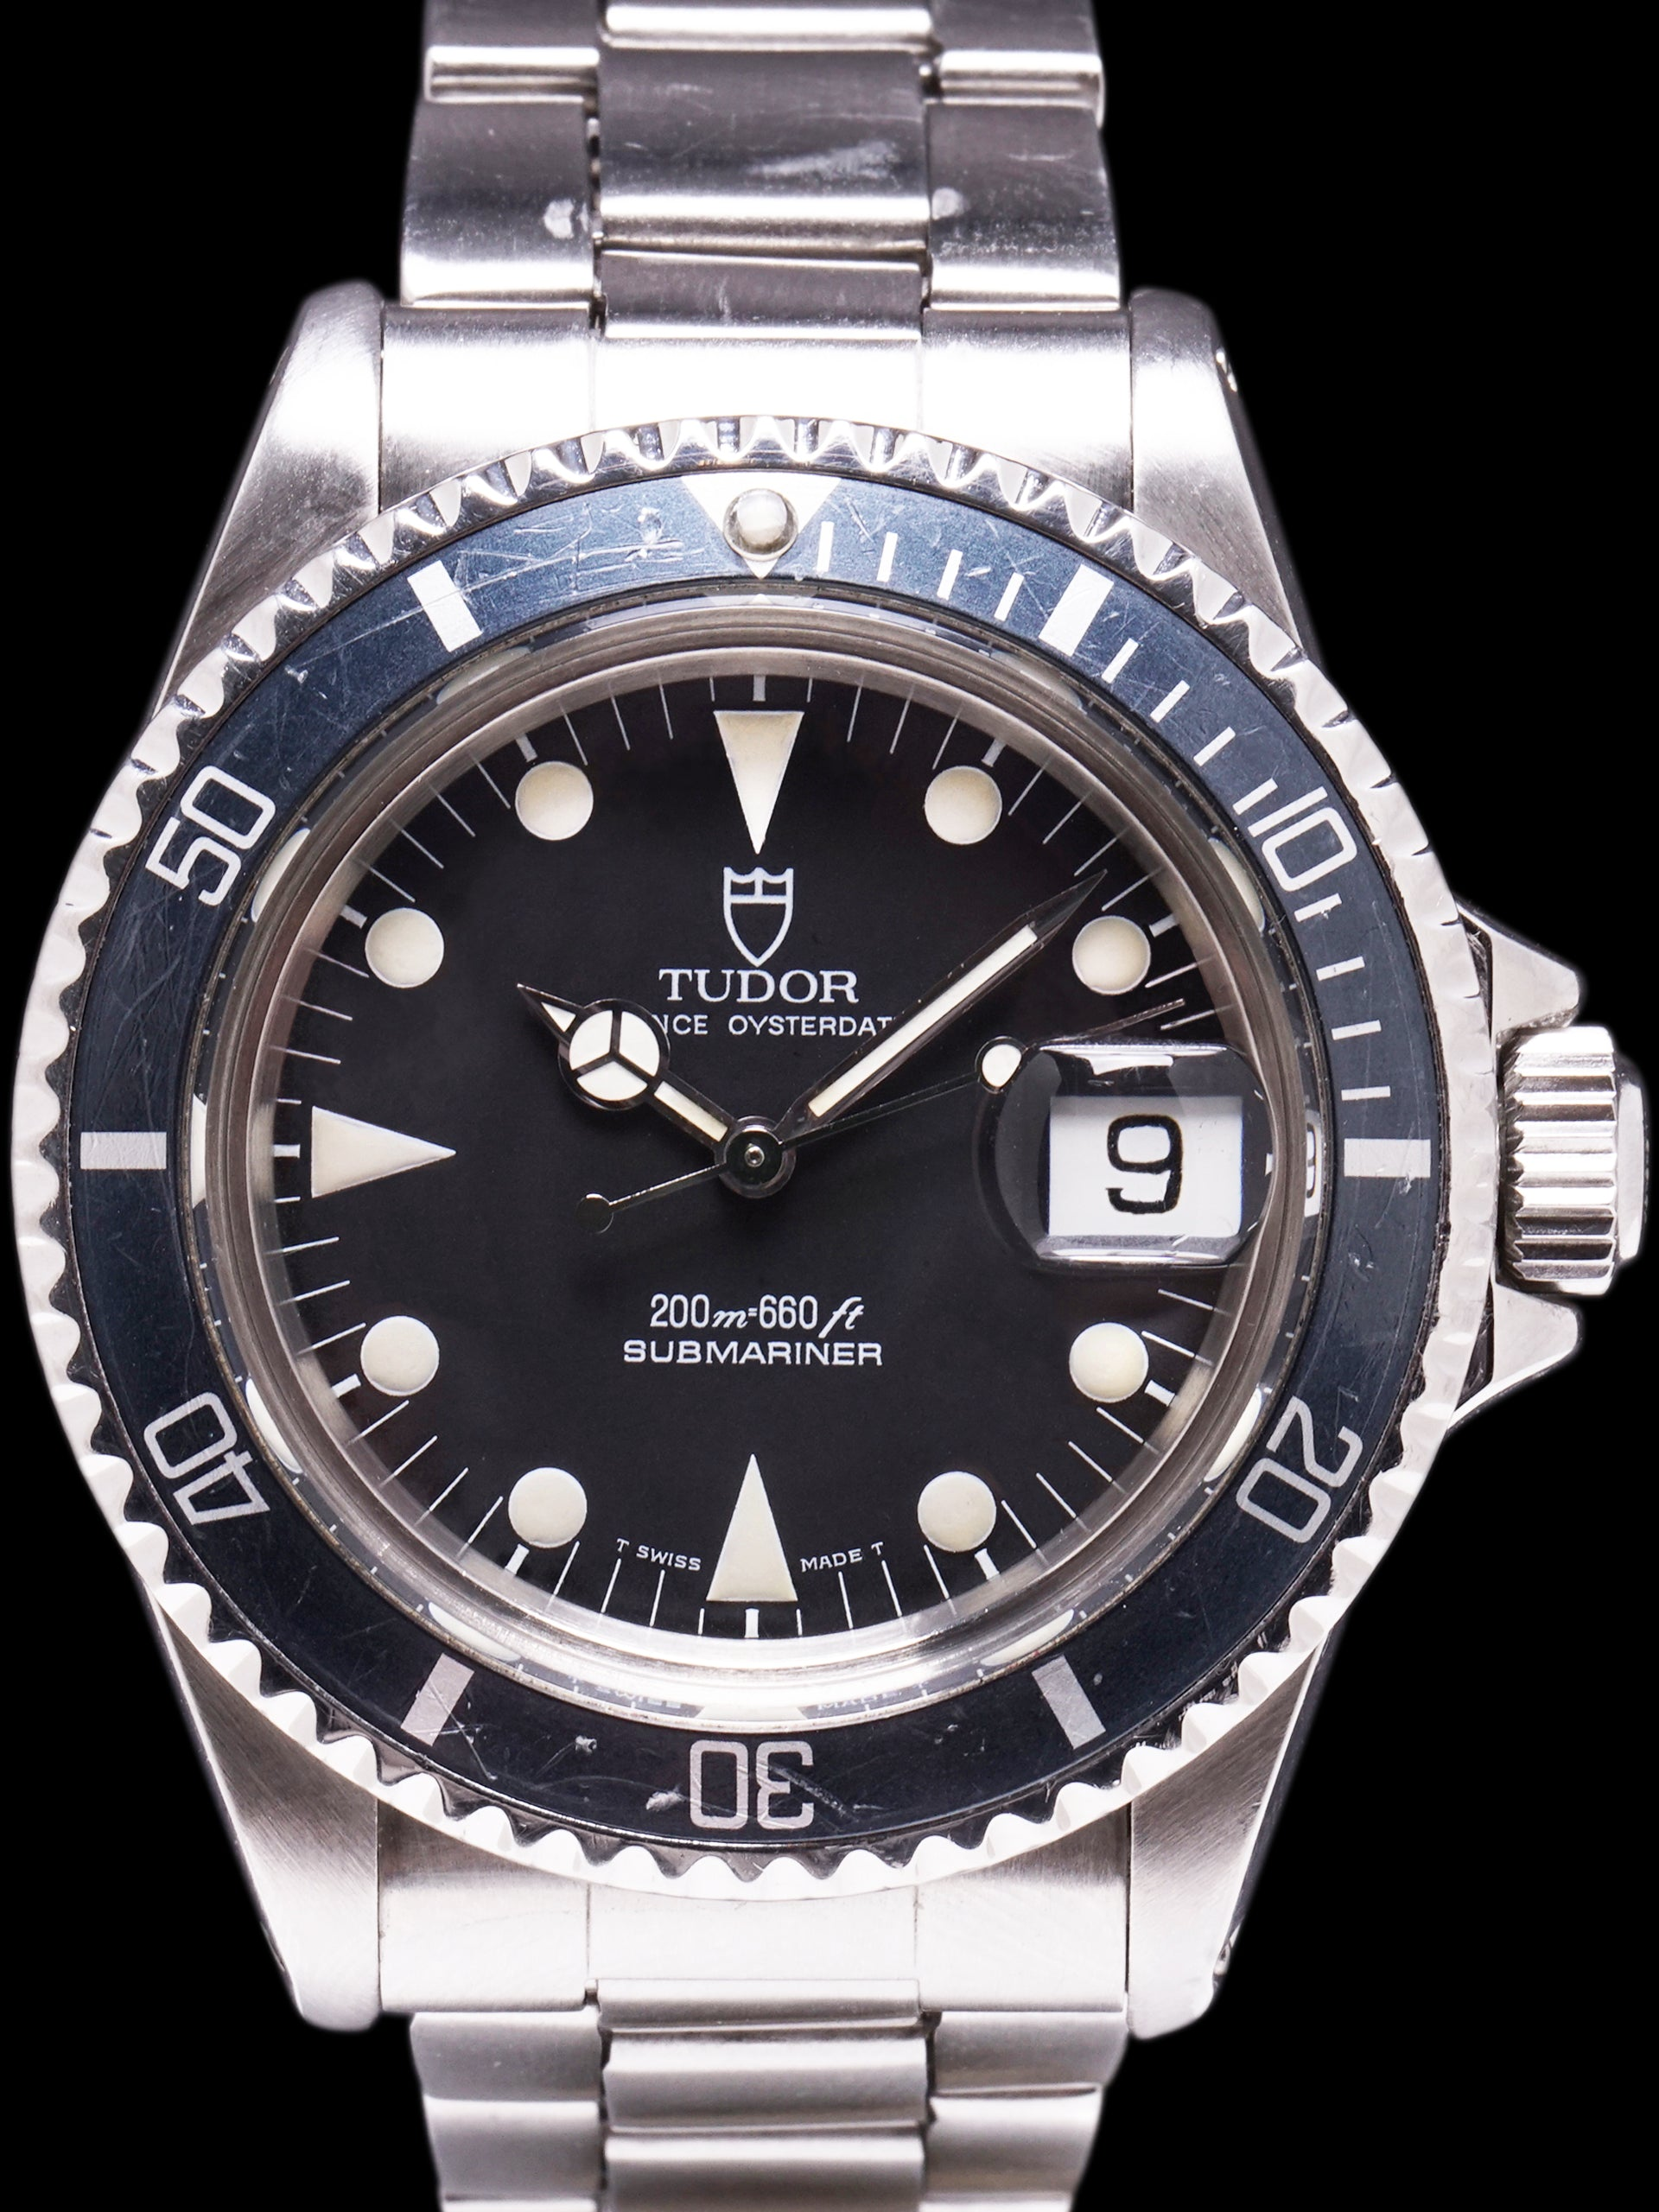 1993 Tudor Submariner (Ref. 79090) W/ Box & Papers